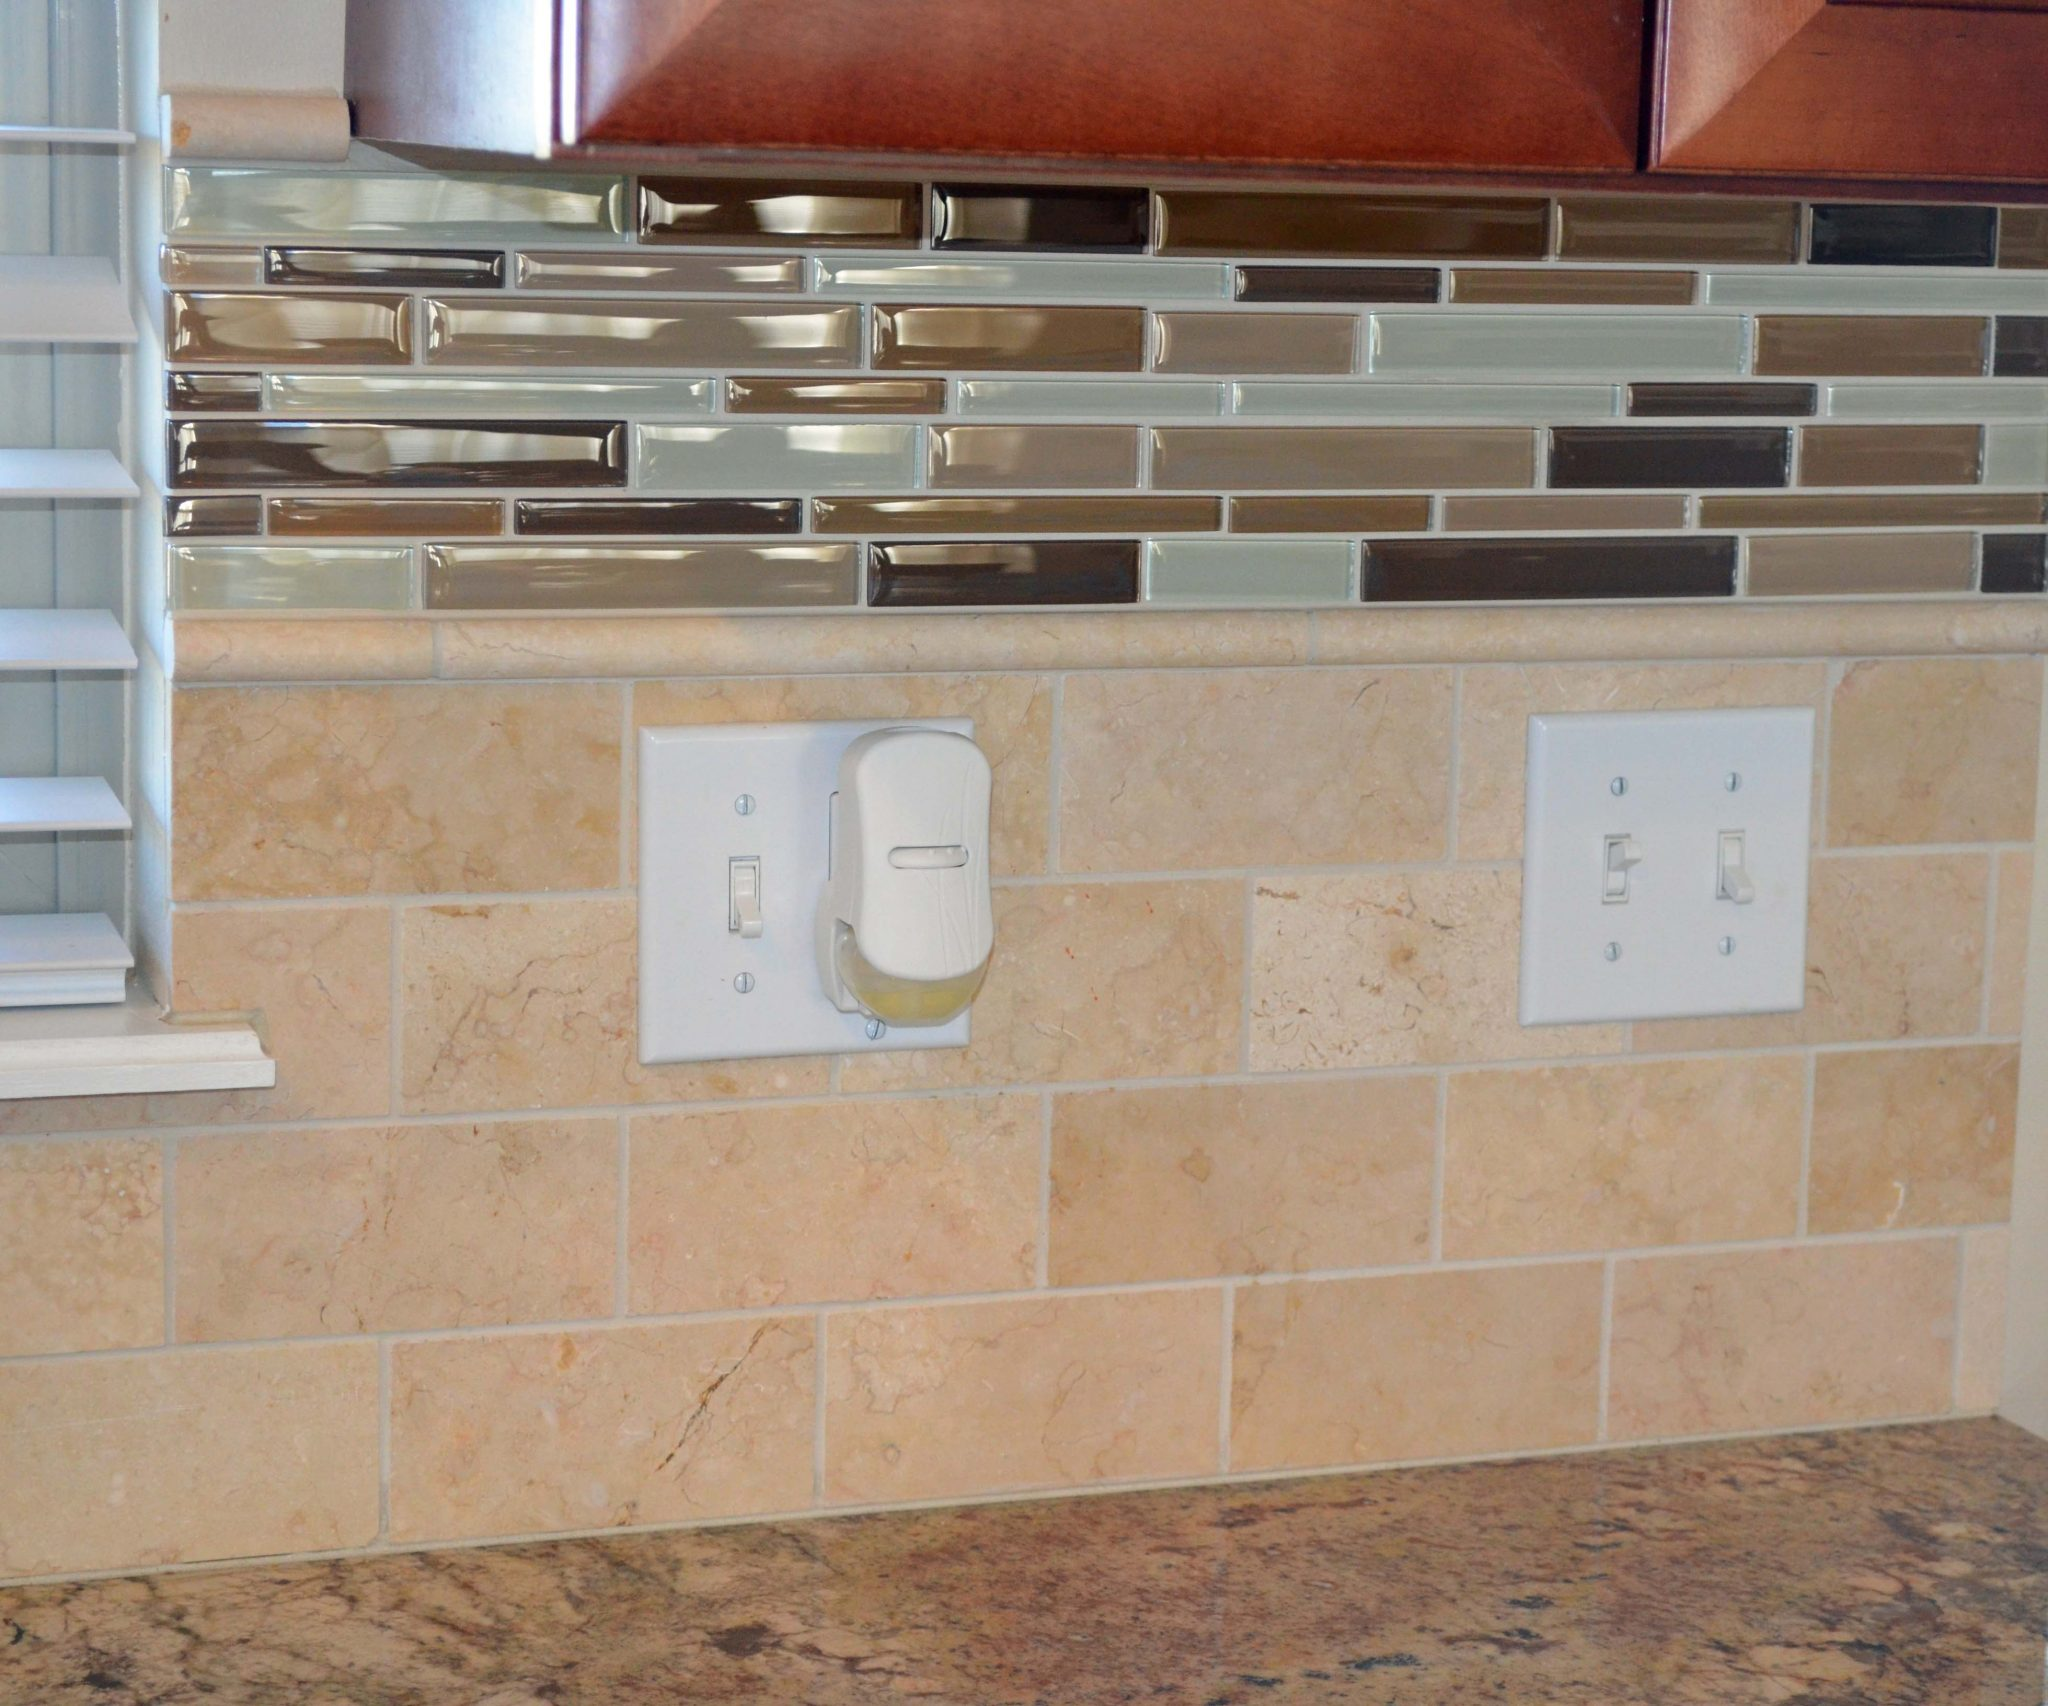 Tile backsplash her tool belt backsplash printer friendly version tile backsplash dailygadgetfo Images